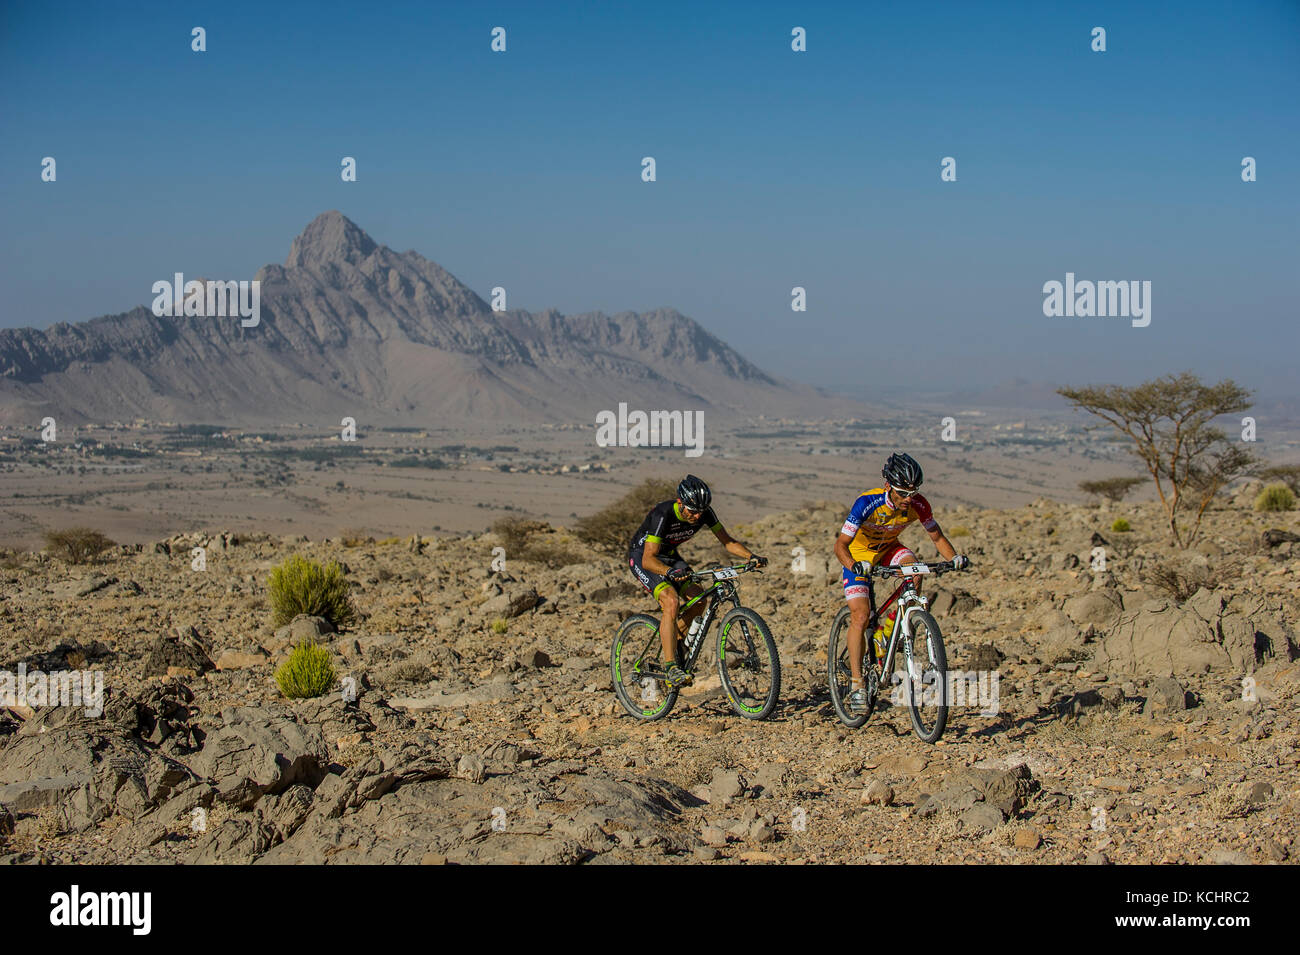 Competitors take part in the Trans Hajar mountain bike stage race in the Hajar mountains, Oman. - Stock Image